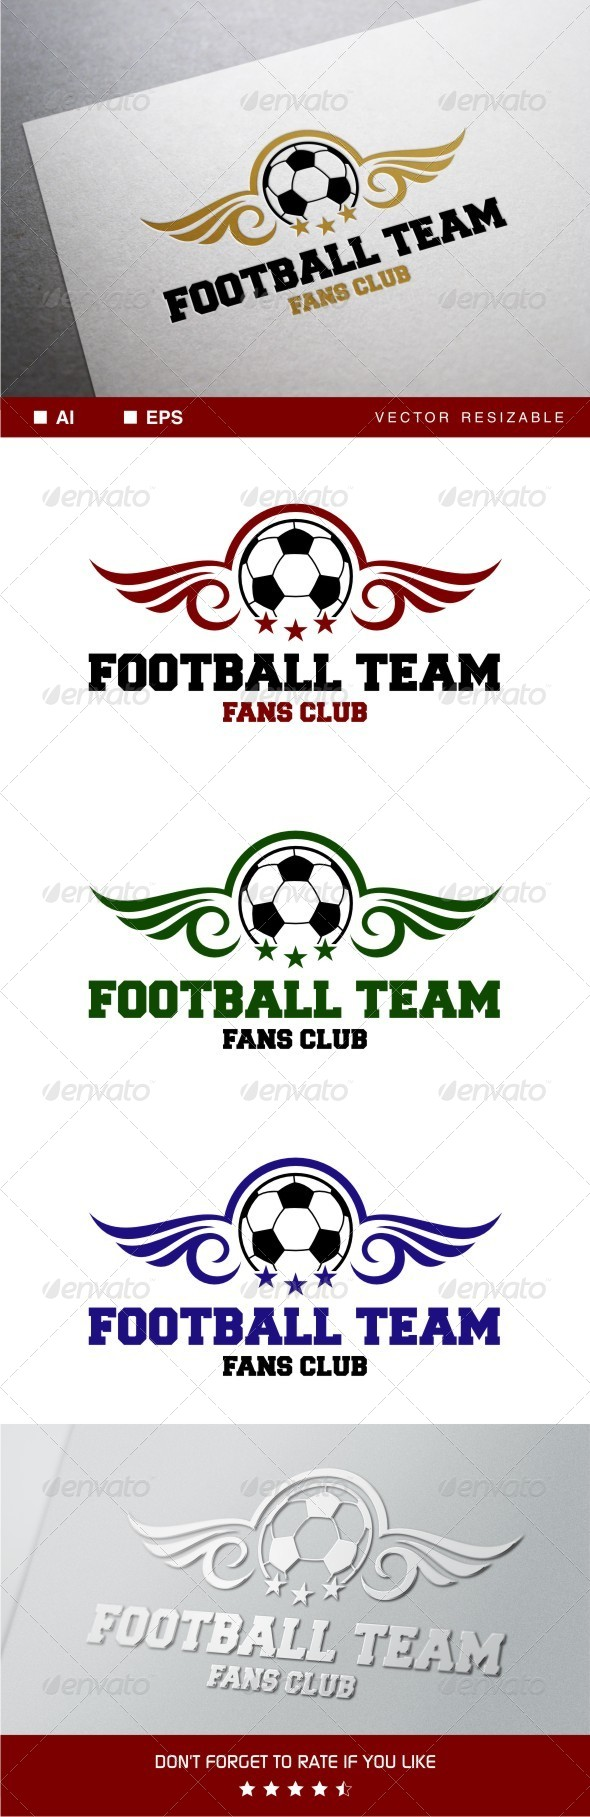 GraphicRiver Football Team Logo 7921350